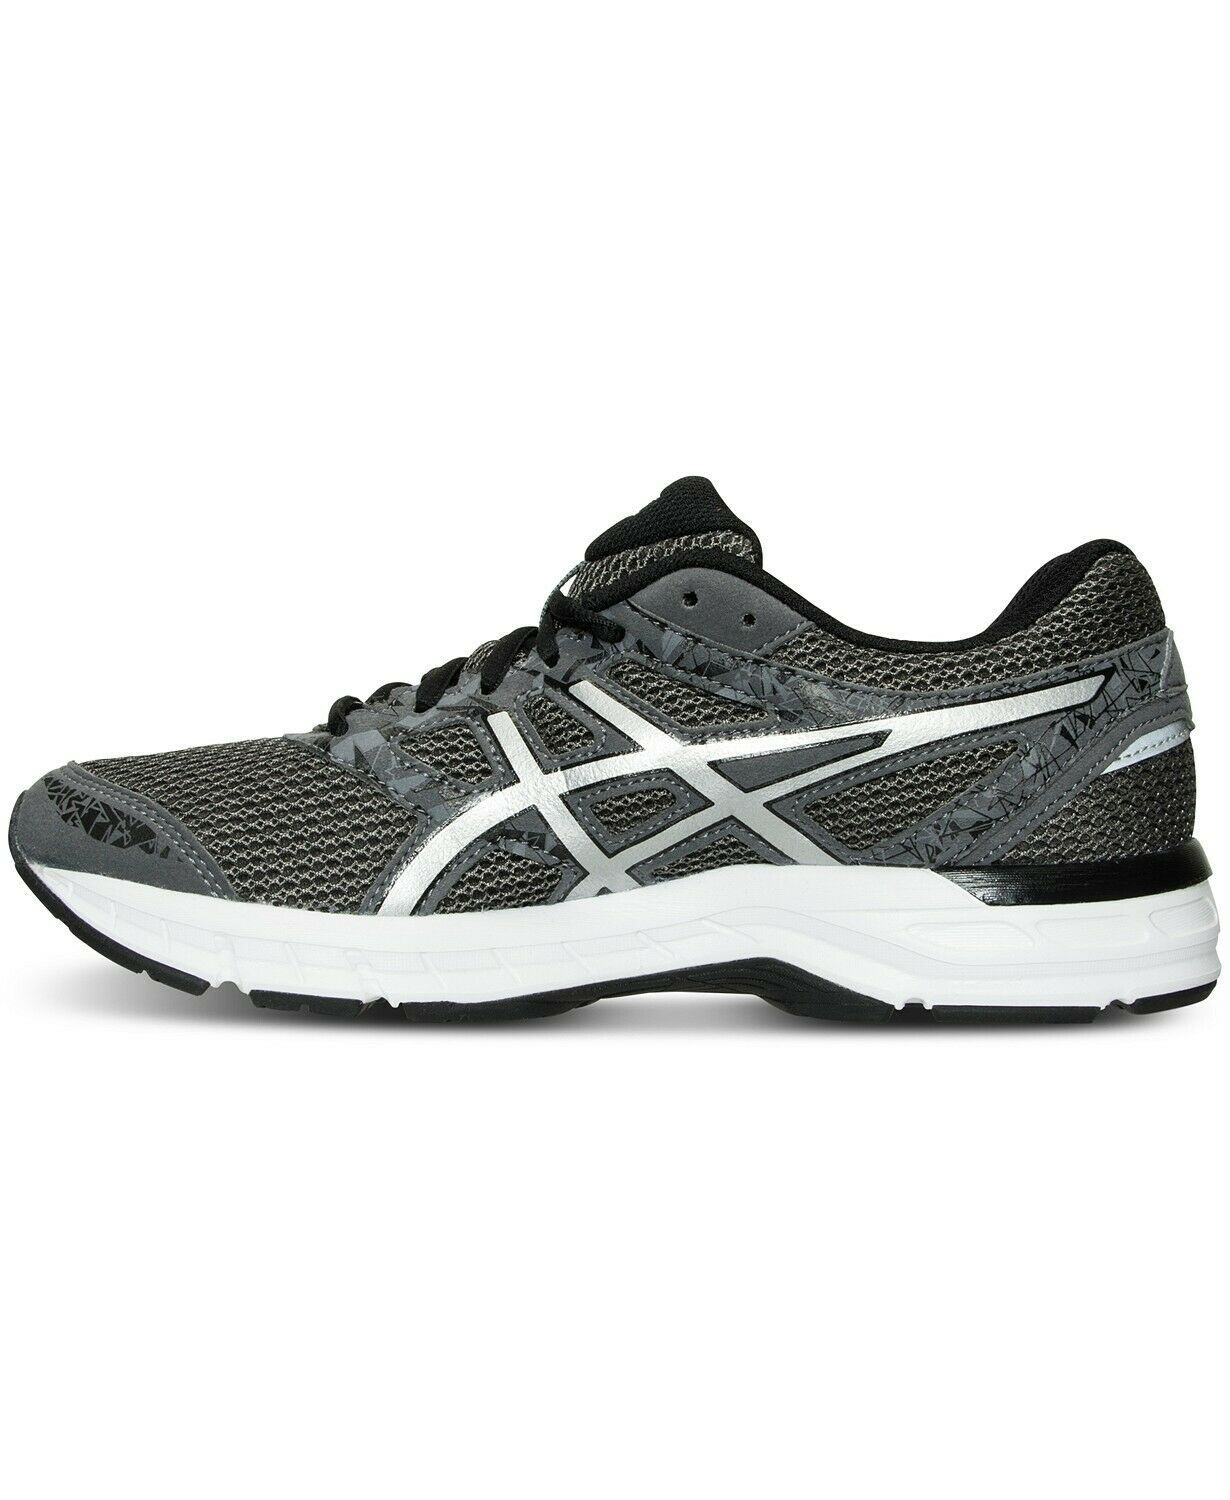 Asics Men's Excite 4 Running Sneakers from Finish Line image 4